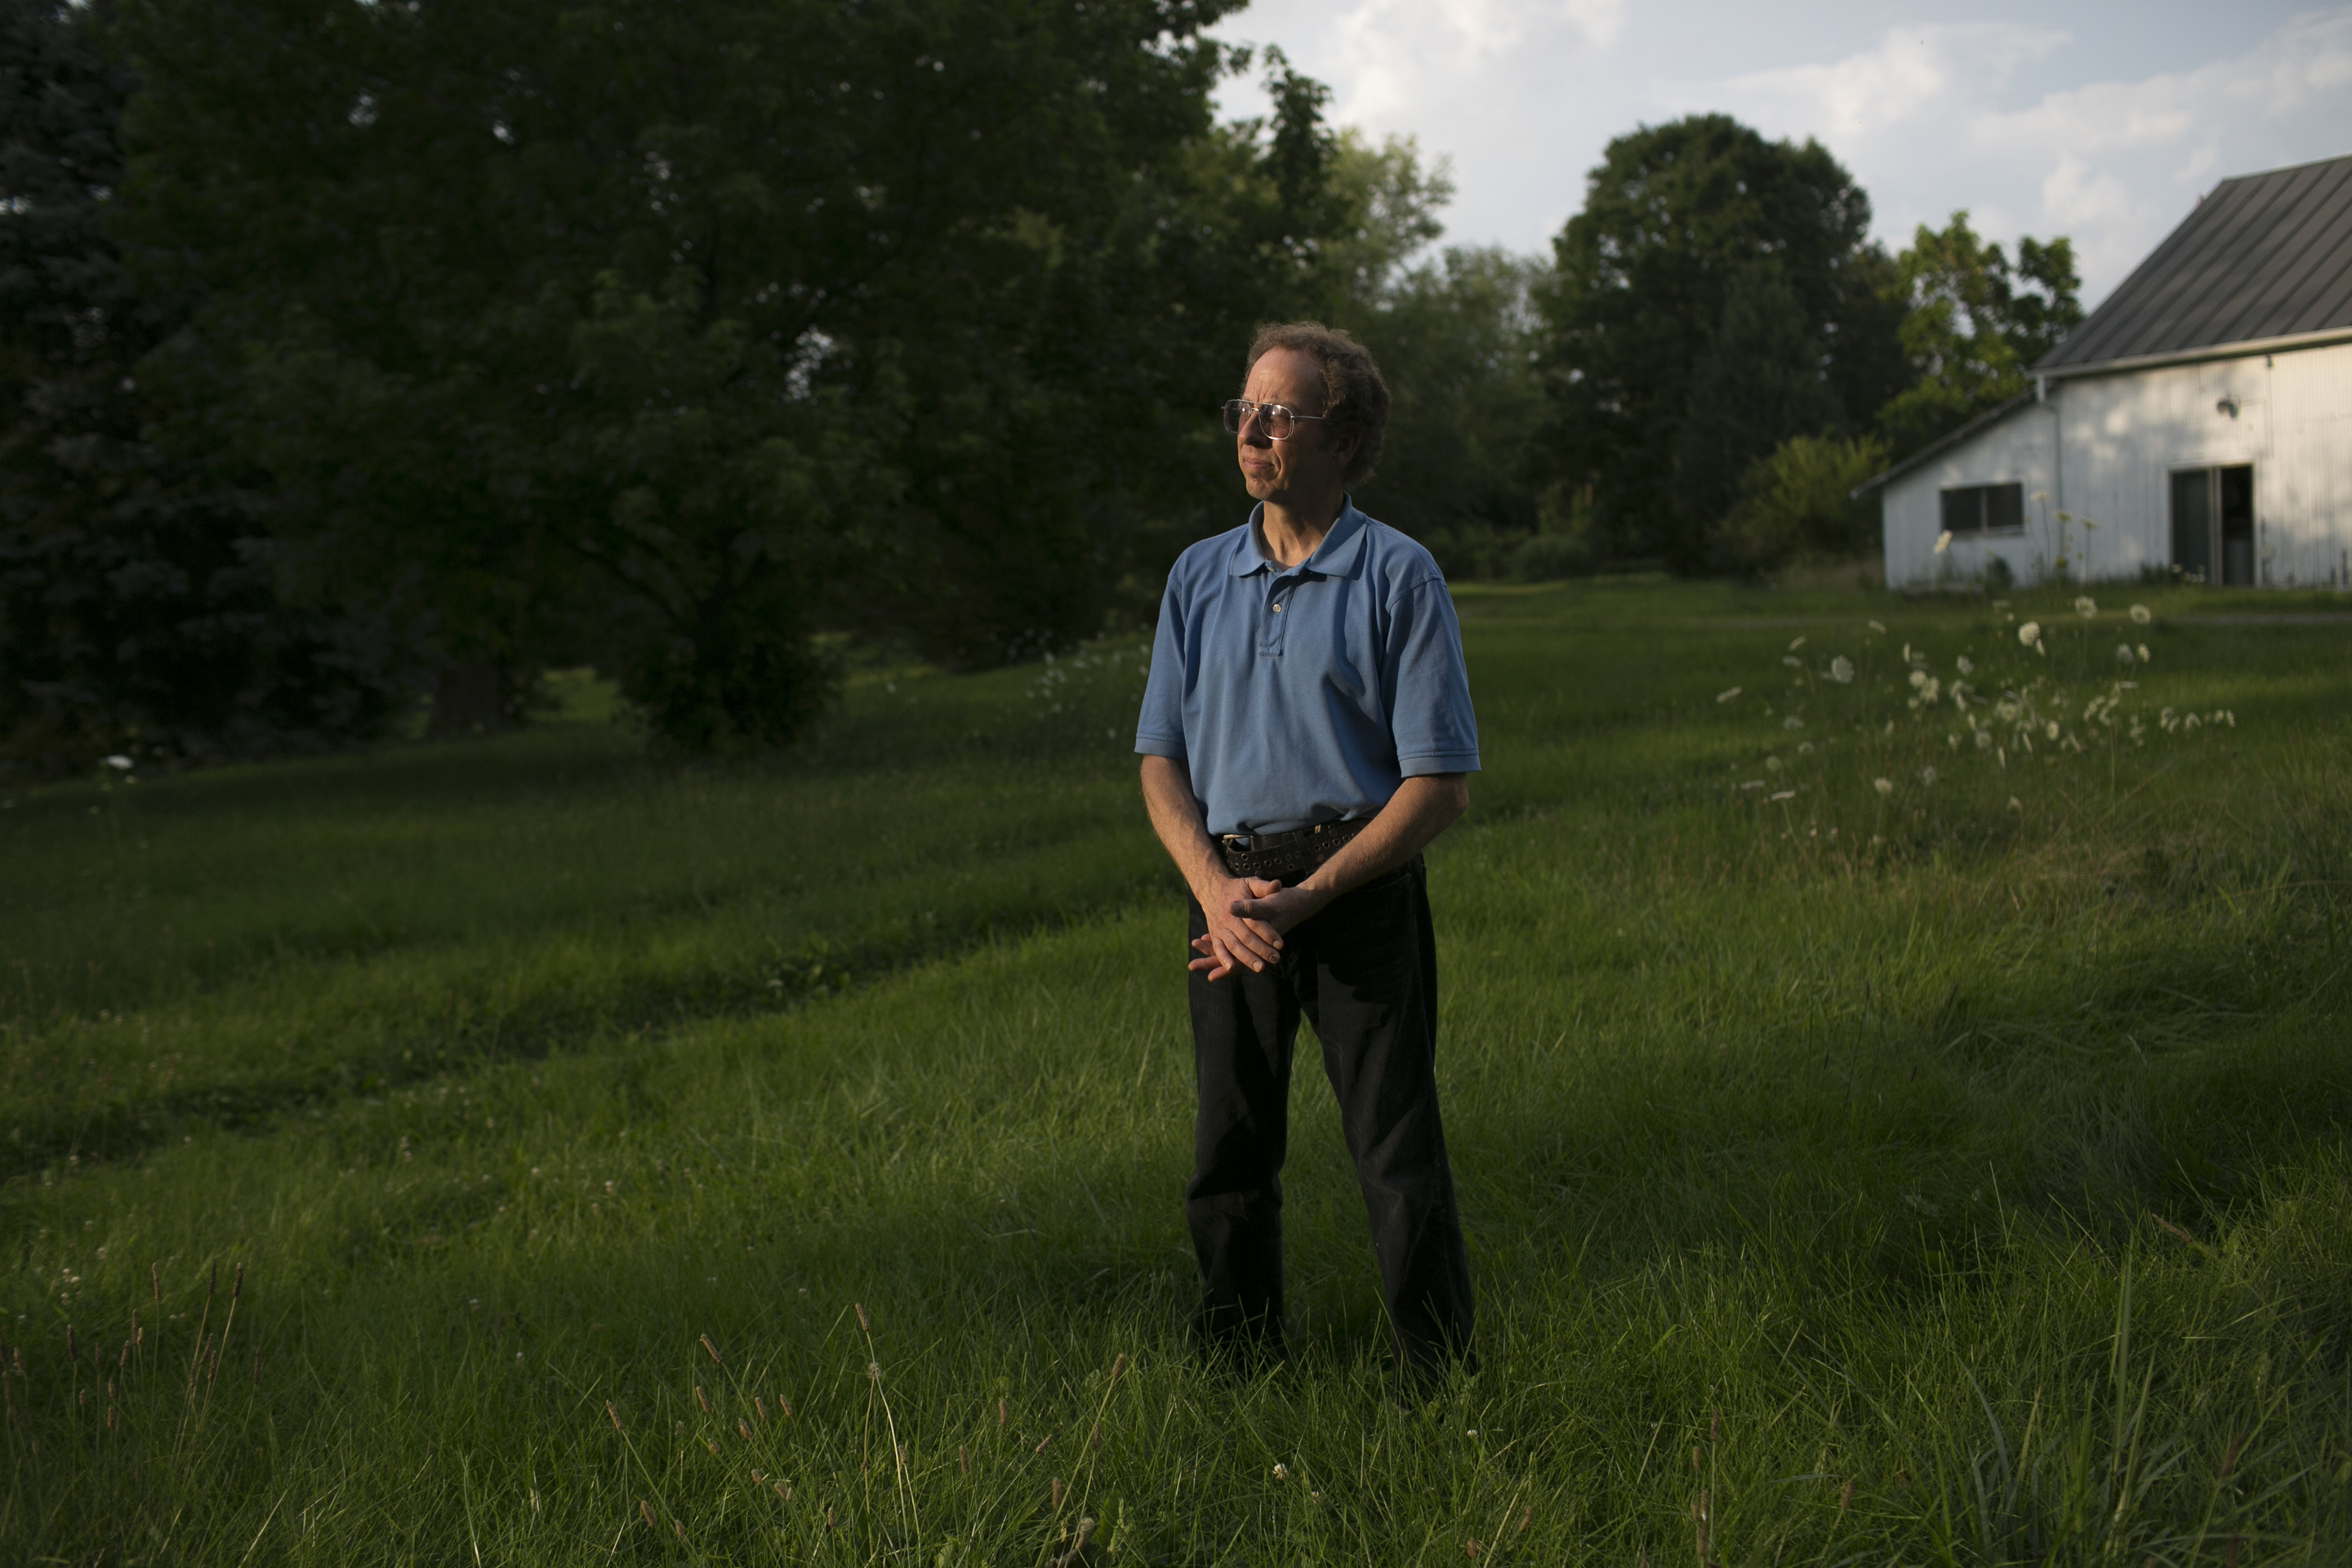 Fowle in the yard of his home in Miamisburg, OH.